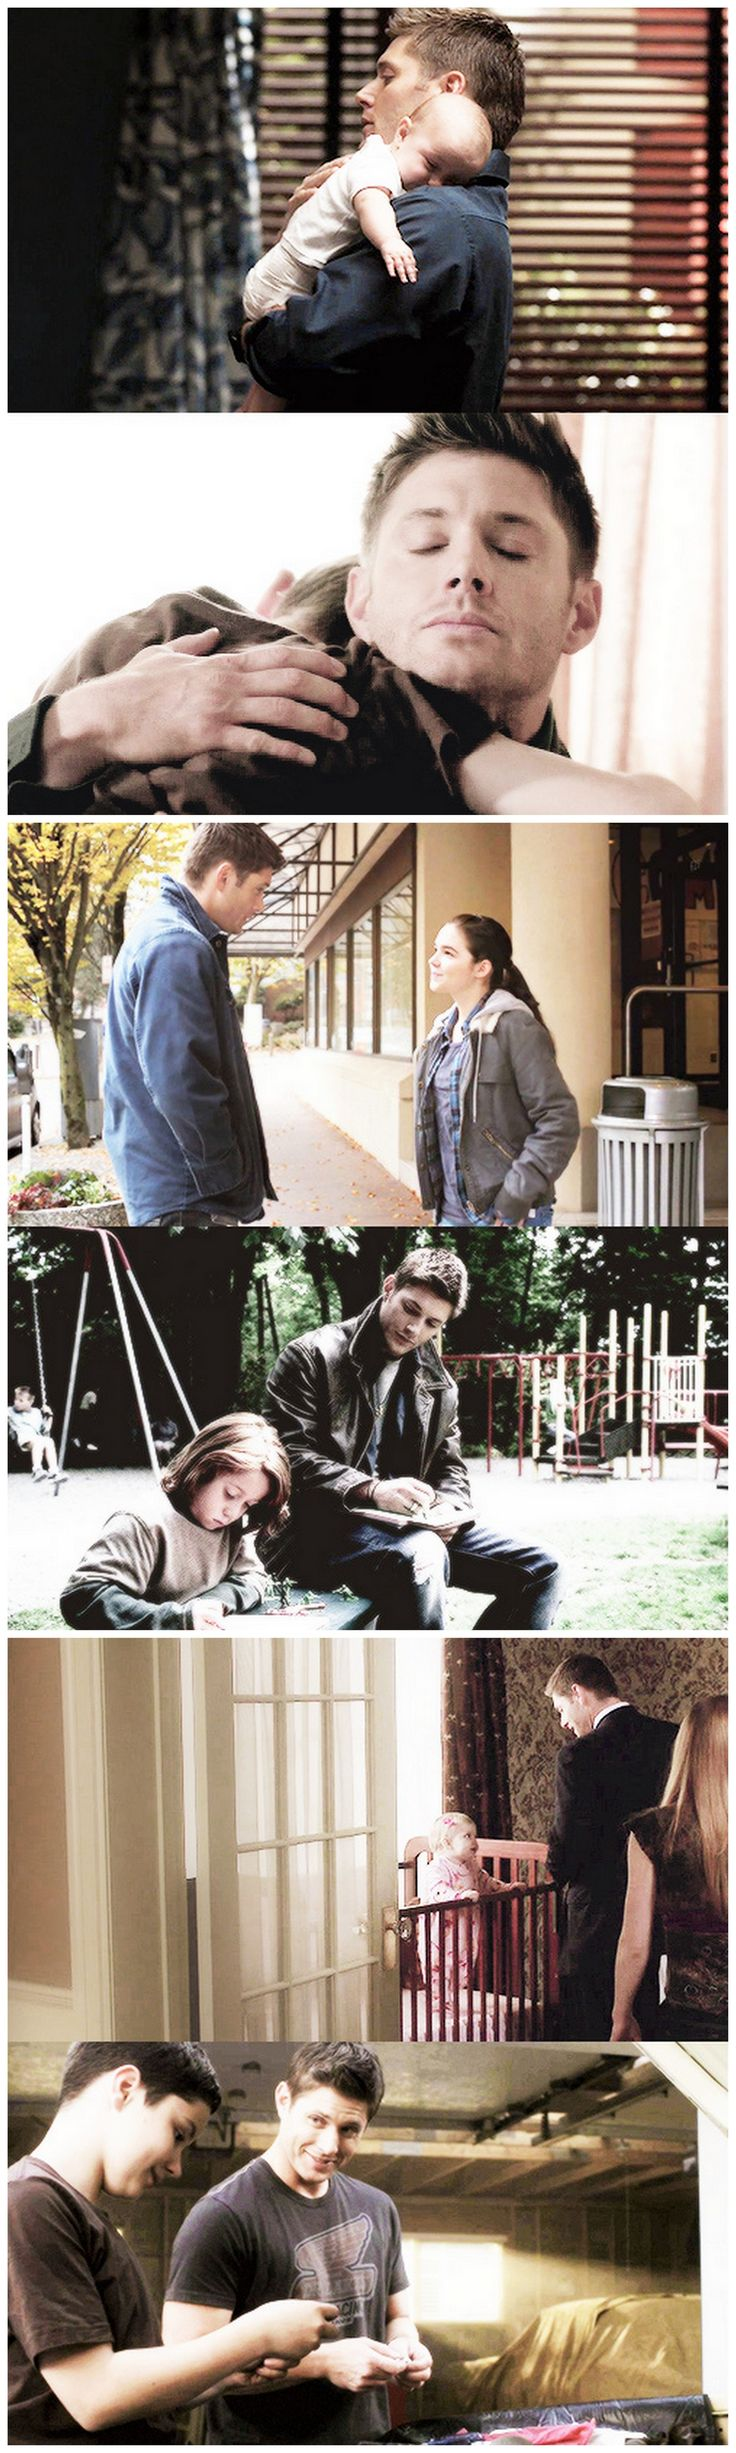 Dean is always the one with the kids, Sam is better at speaking to the adults so they answer questions, but Dean can talk to the kids. But you don't get it, he practically raised Sam since he was 4, he was always the one to give him dinner and tuck him in, he was the one who stayed home to take care of Sam when their dad was out hunting. This is why Sam never saw eye to eye with their dad, not just because they never got along, but because he was never a dad to him. Dean was his brother and…